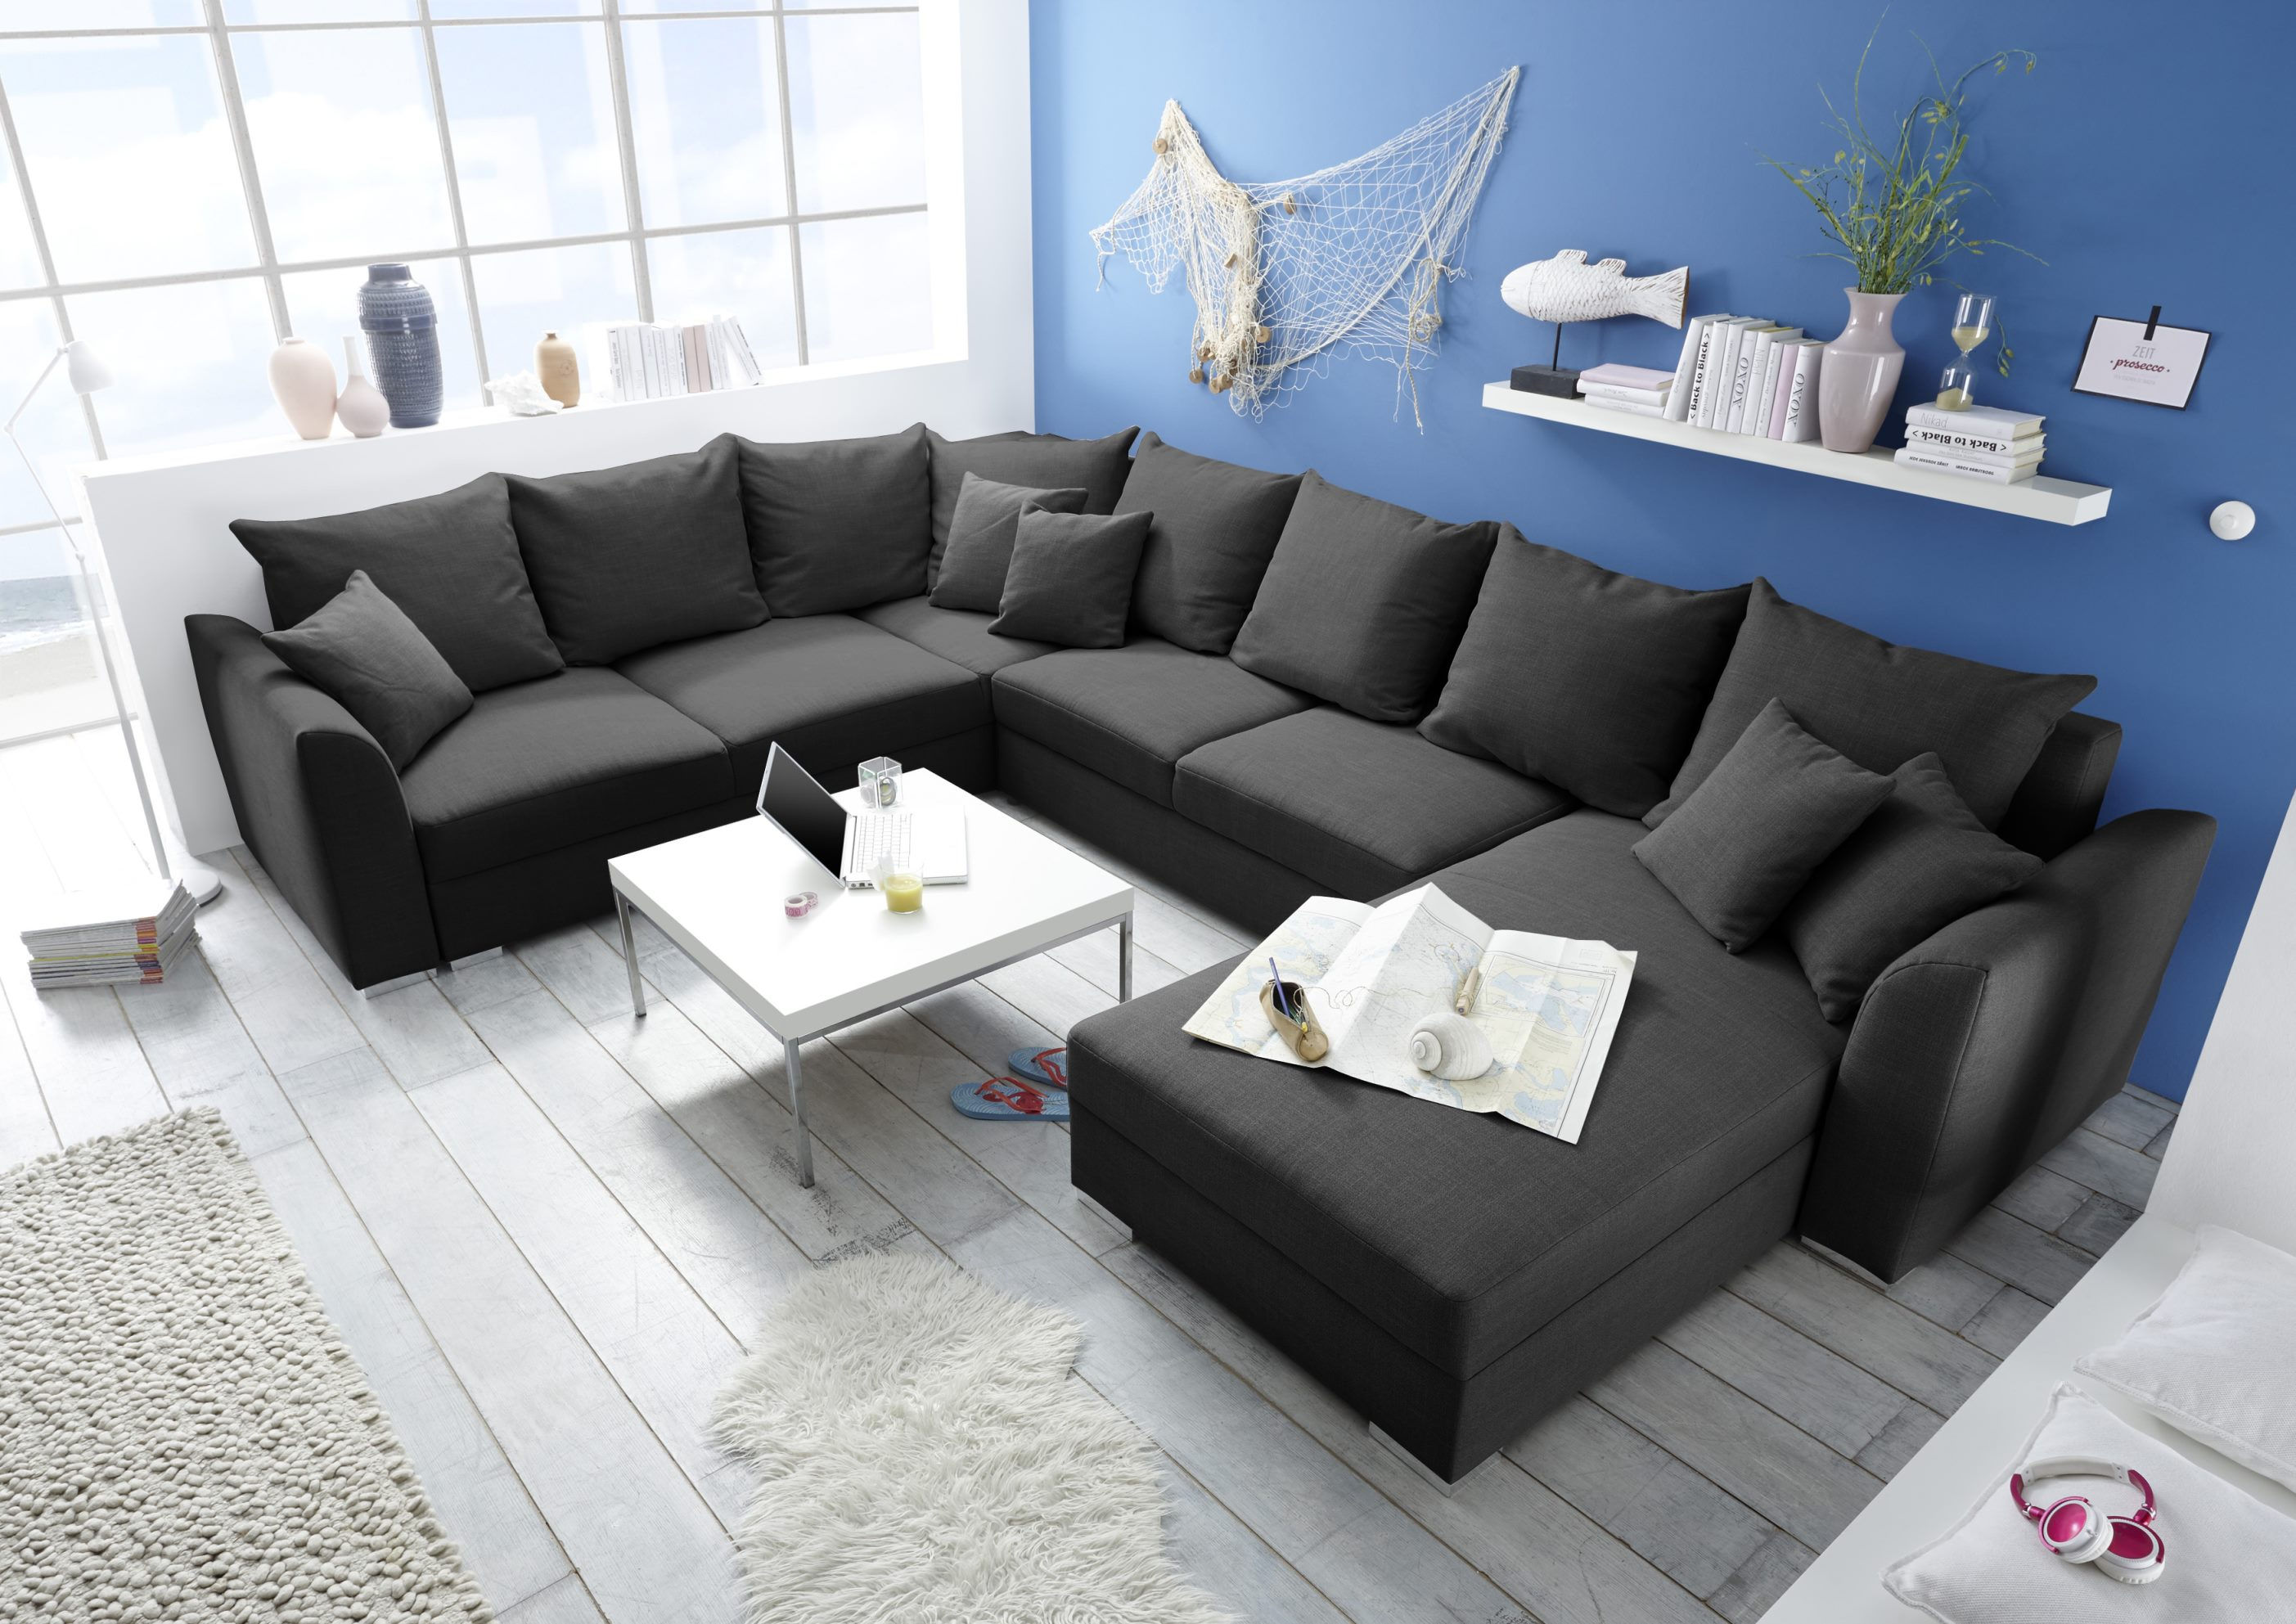 couch sofa eckcouch ecksofa schlafsofa schlafcouch wohnlandschaft 361cm grau ebay. Black Bedroom Furniture Sets. Home Design Ideas